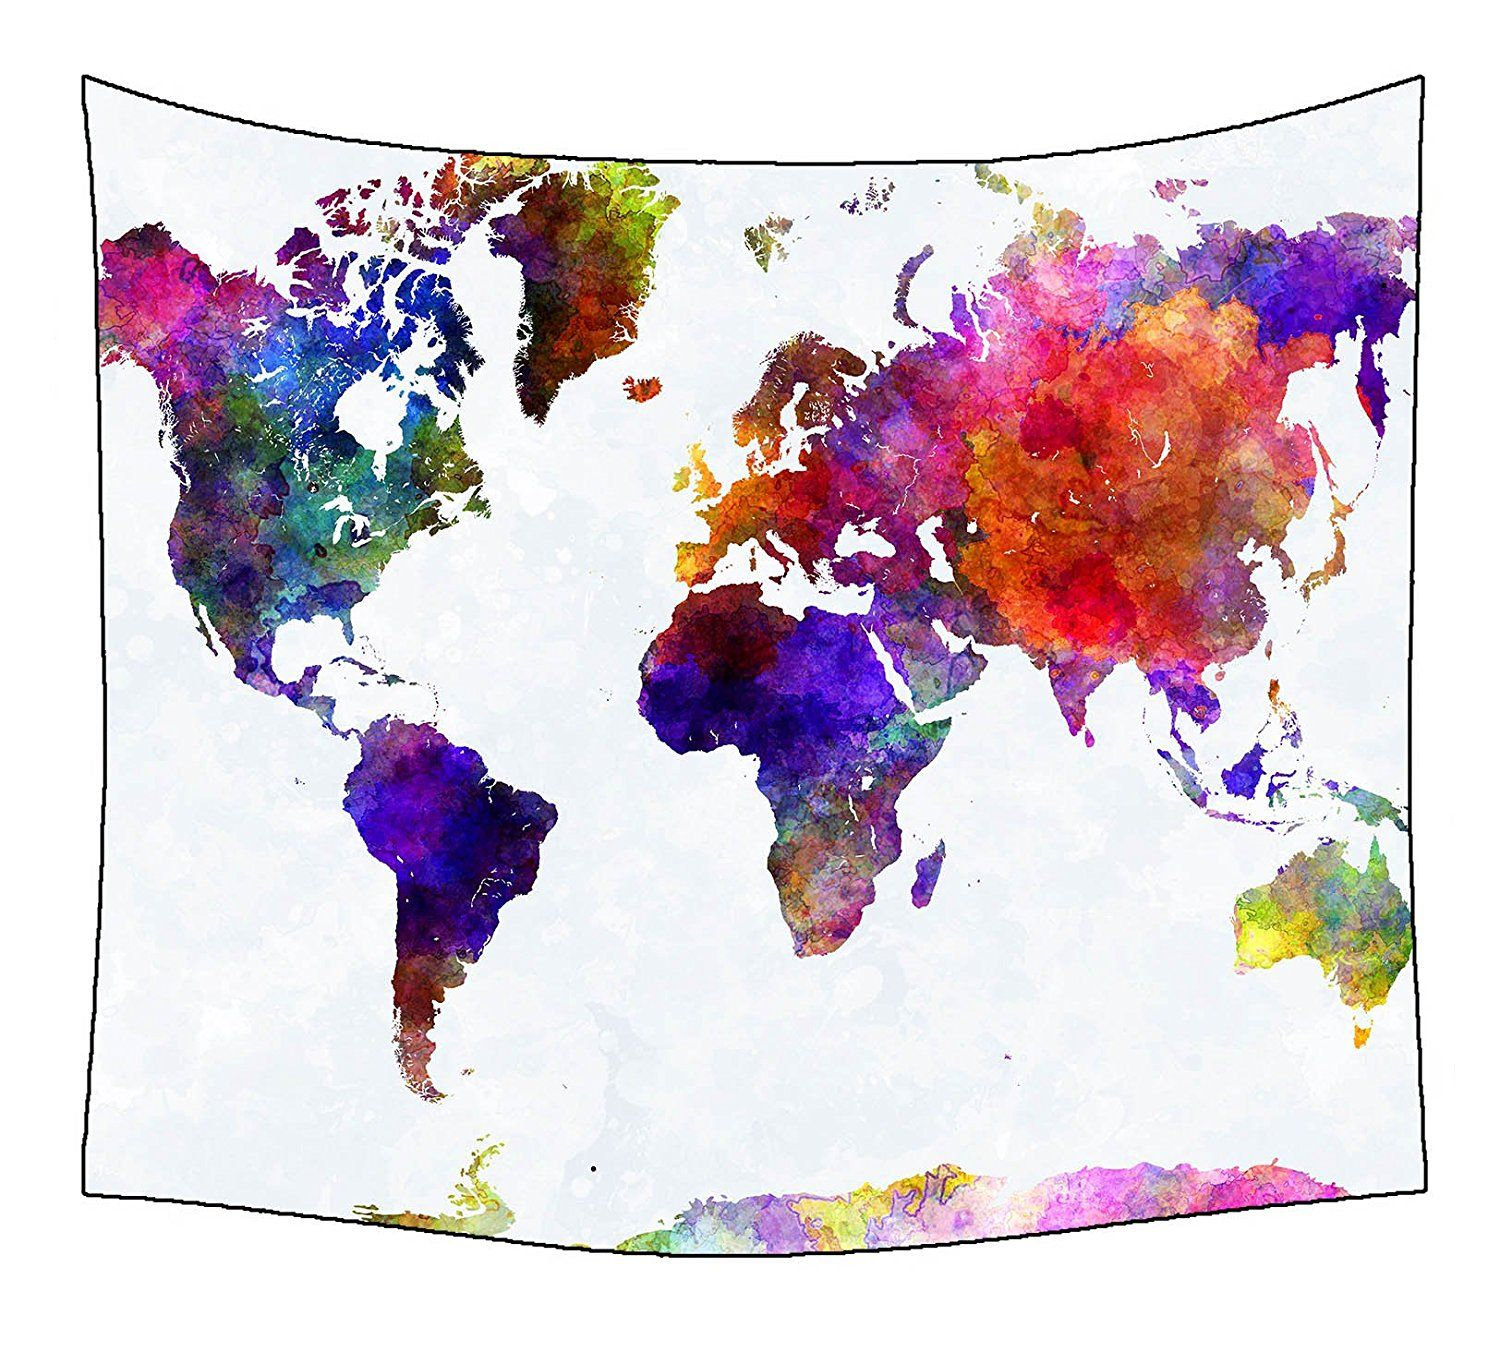 Custom home decor colorful world map wall tapestry wall hanging art custom home decor colorful world map wall tapestry wall hanging art splatter painting 51 x gumiabroncs Images